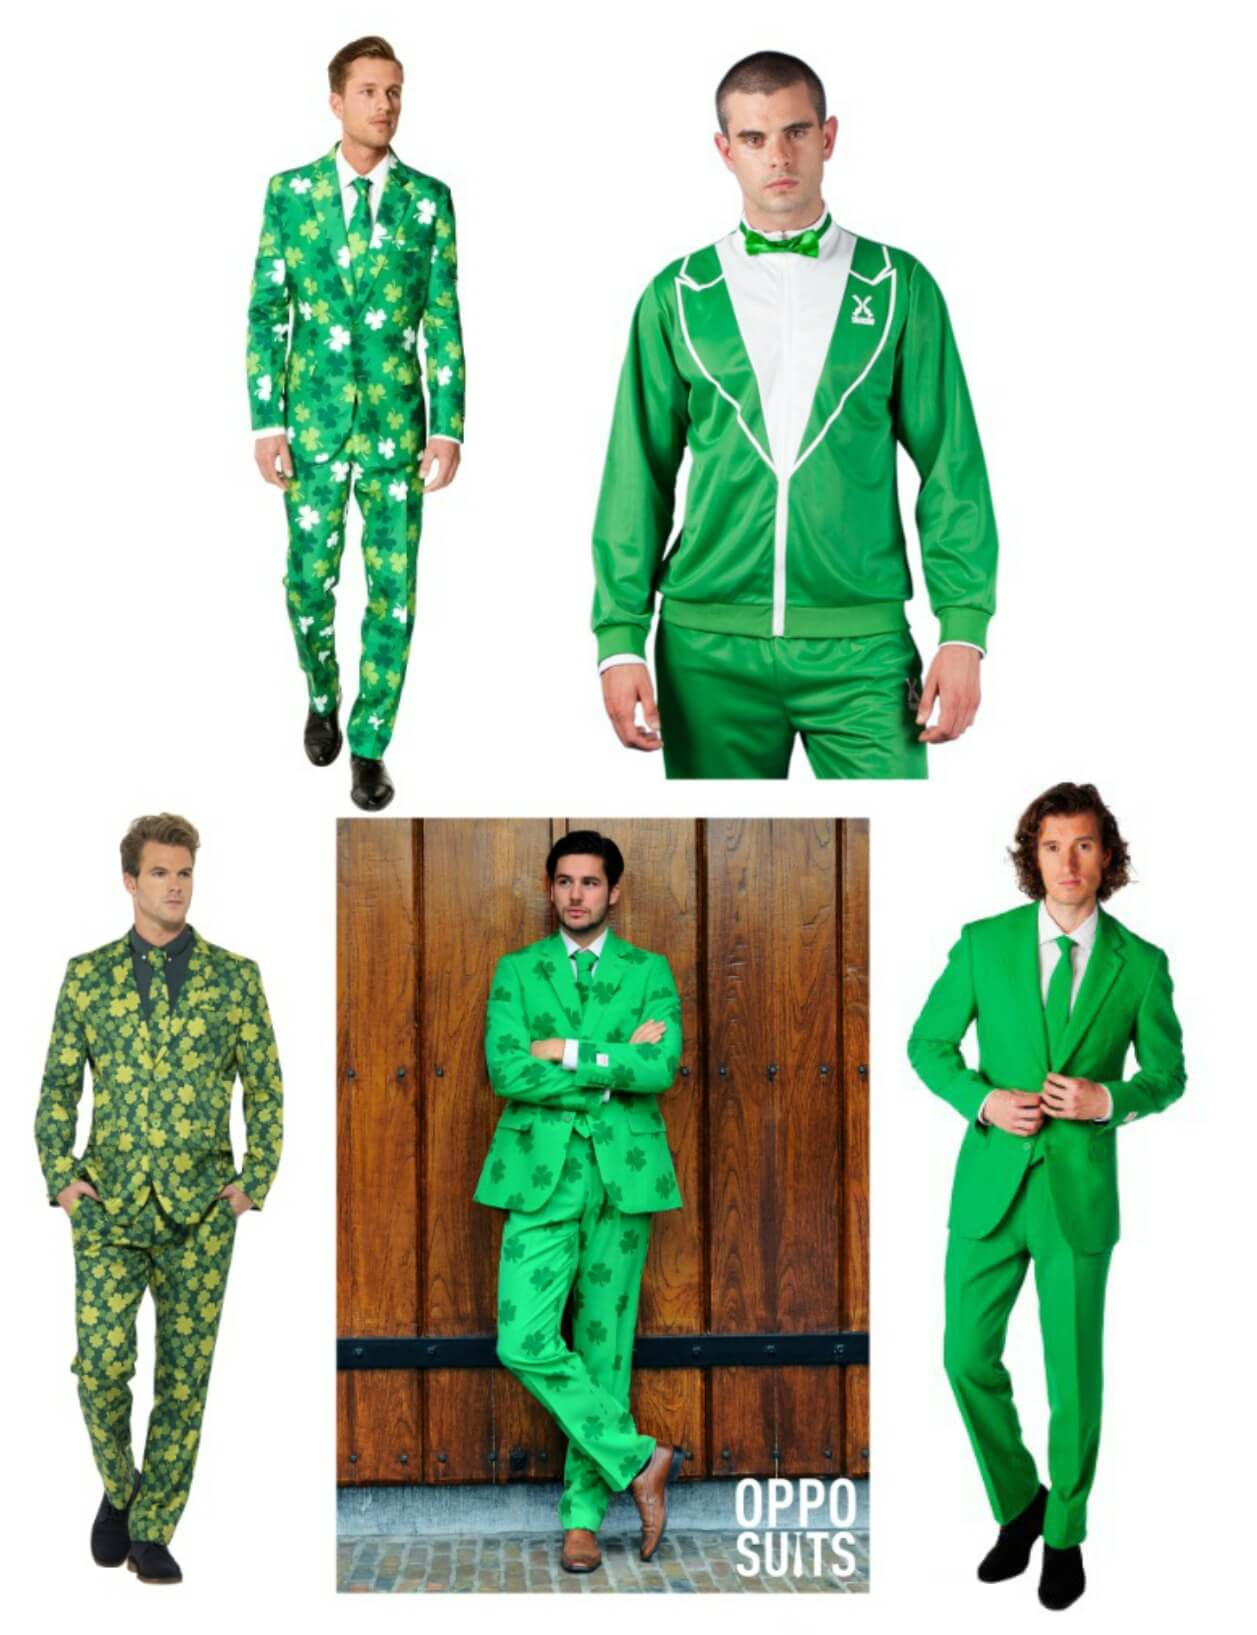 372564be4 How To Stand Out This St. Patrick's Day - Fun Blog